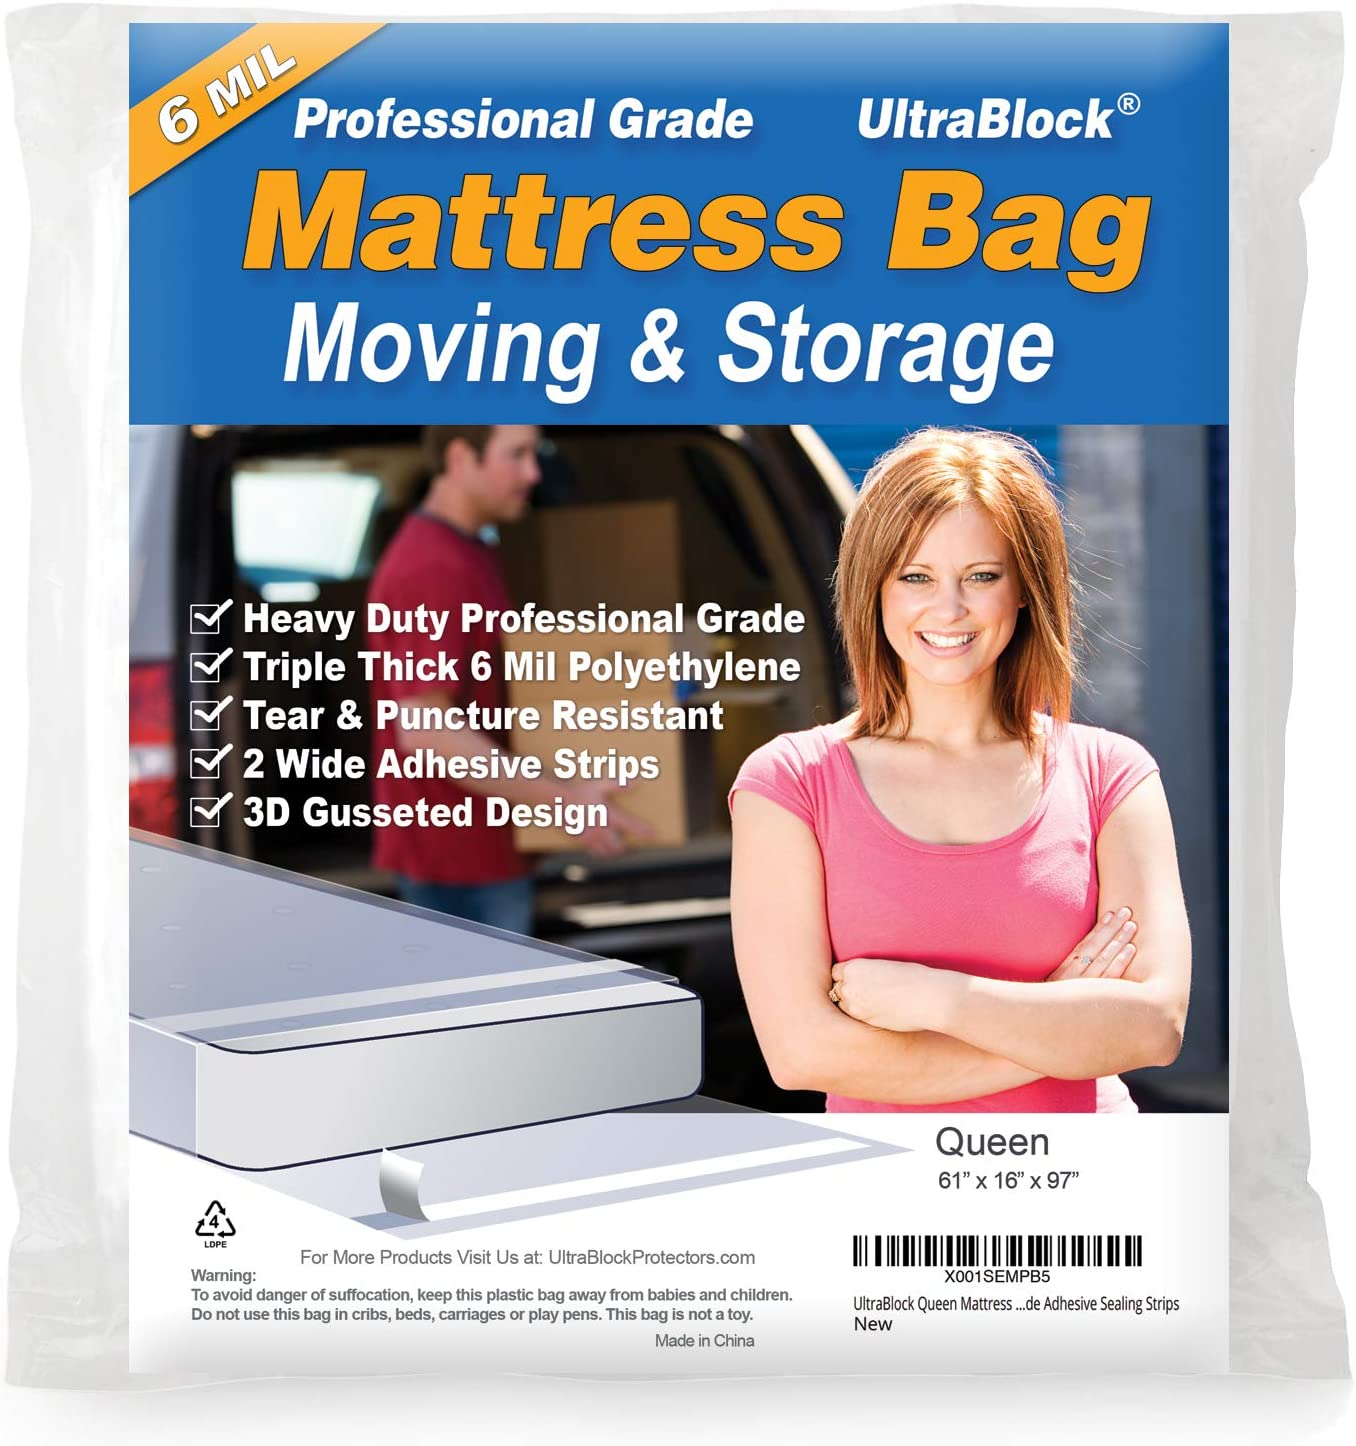 UltraBlock Mattress Bag for Moving, Storage or Disposal - Queen Size Heavy Duty Triple Thick 6 Millimeter Tear & Puncture Resistant Bag with Two Extra Wide Adhesive Strips